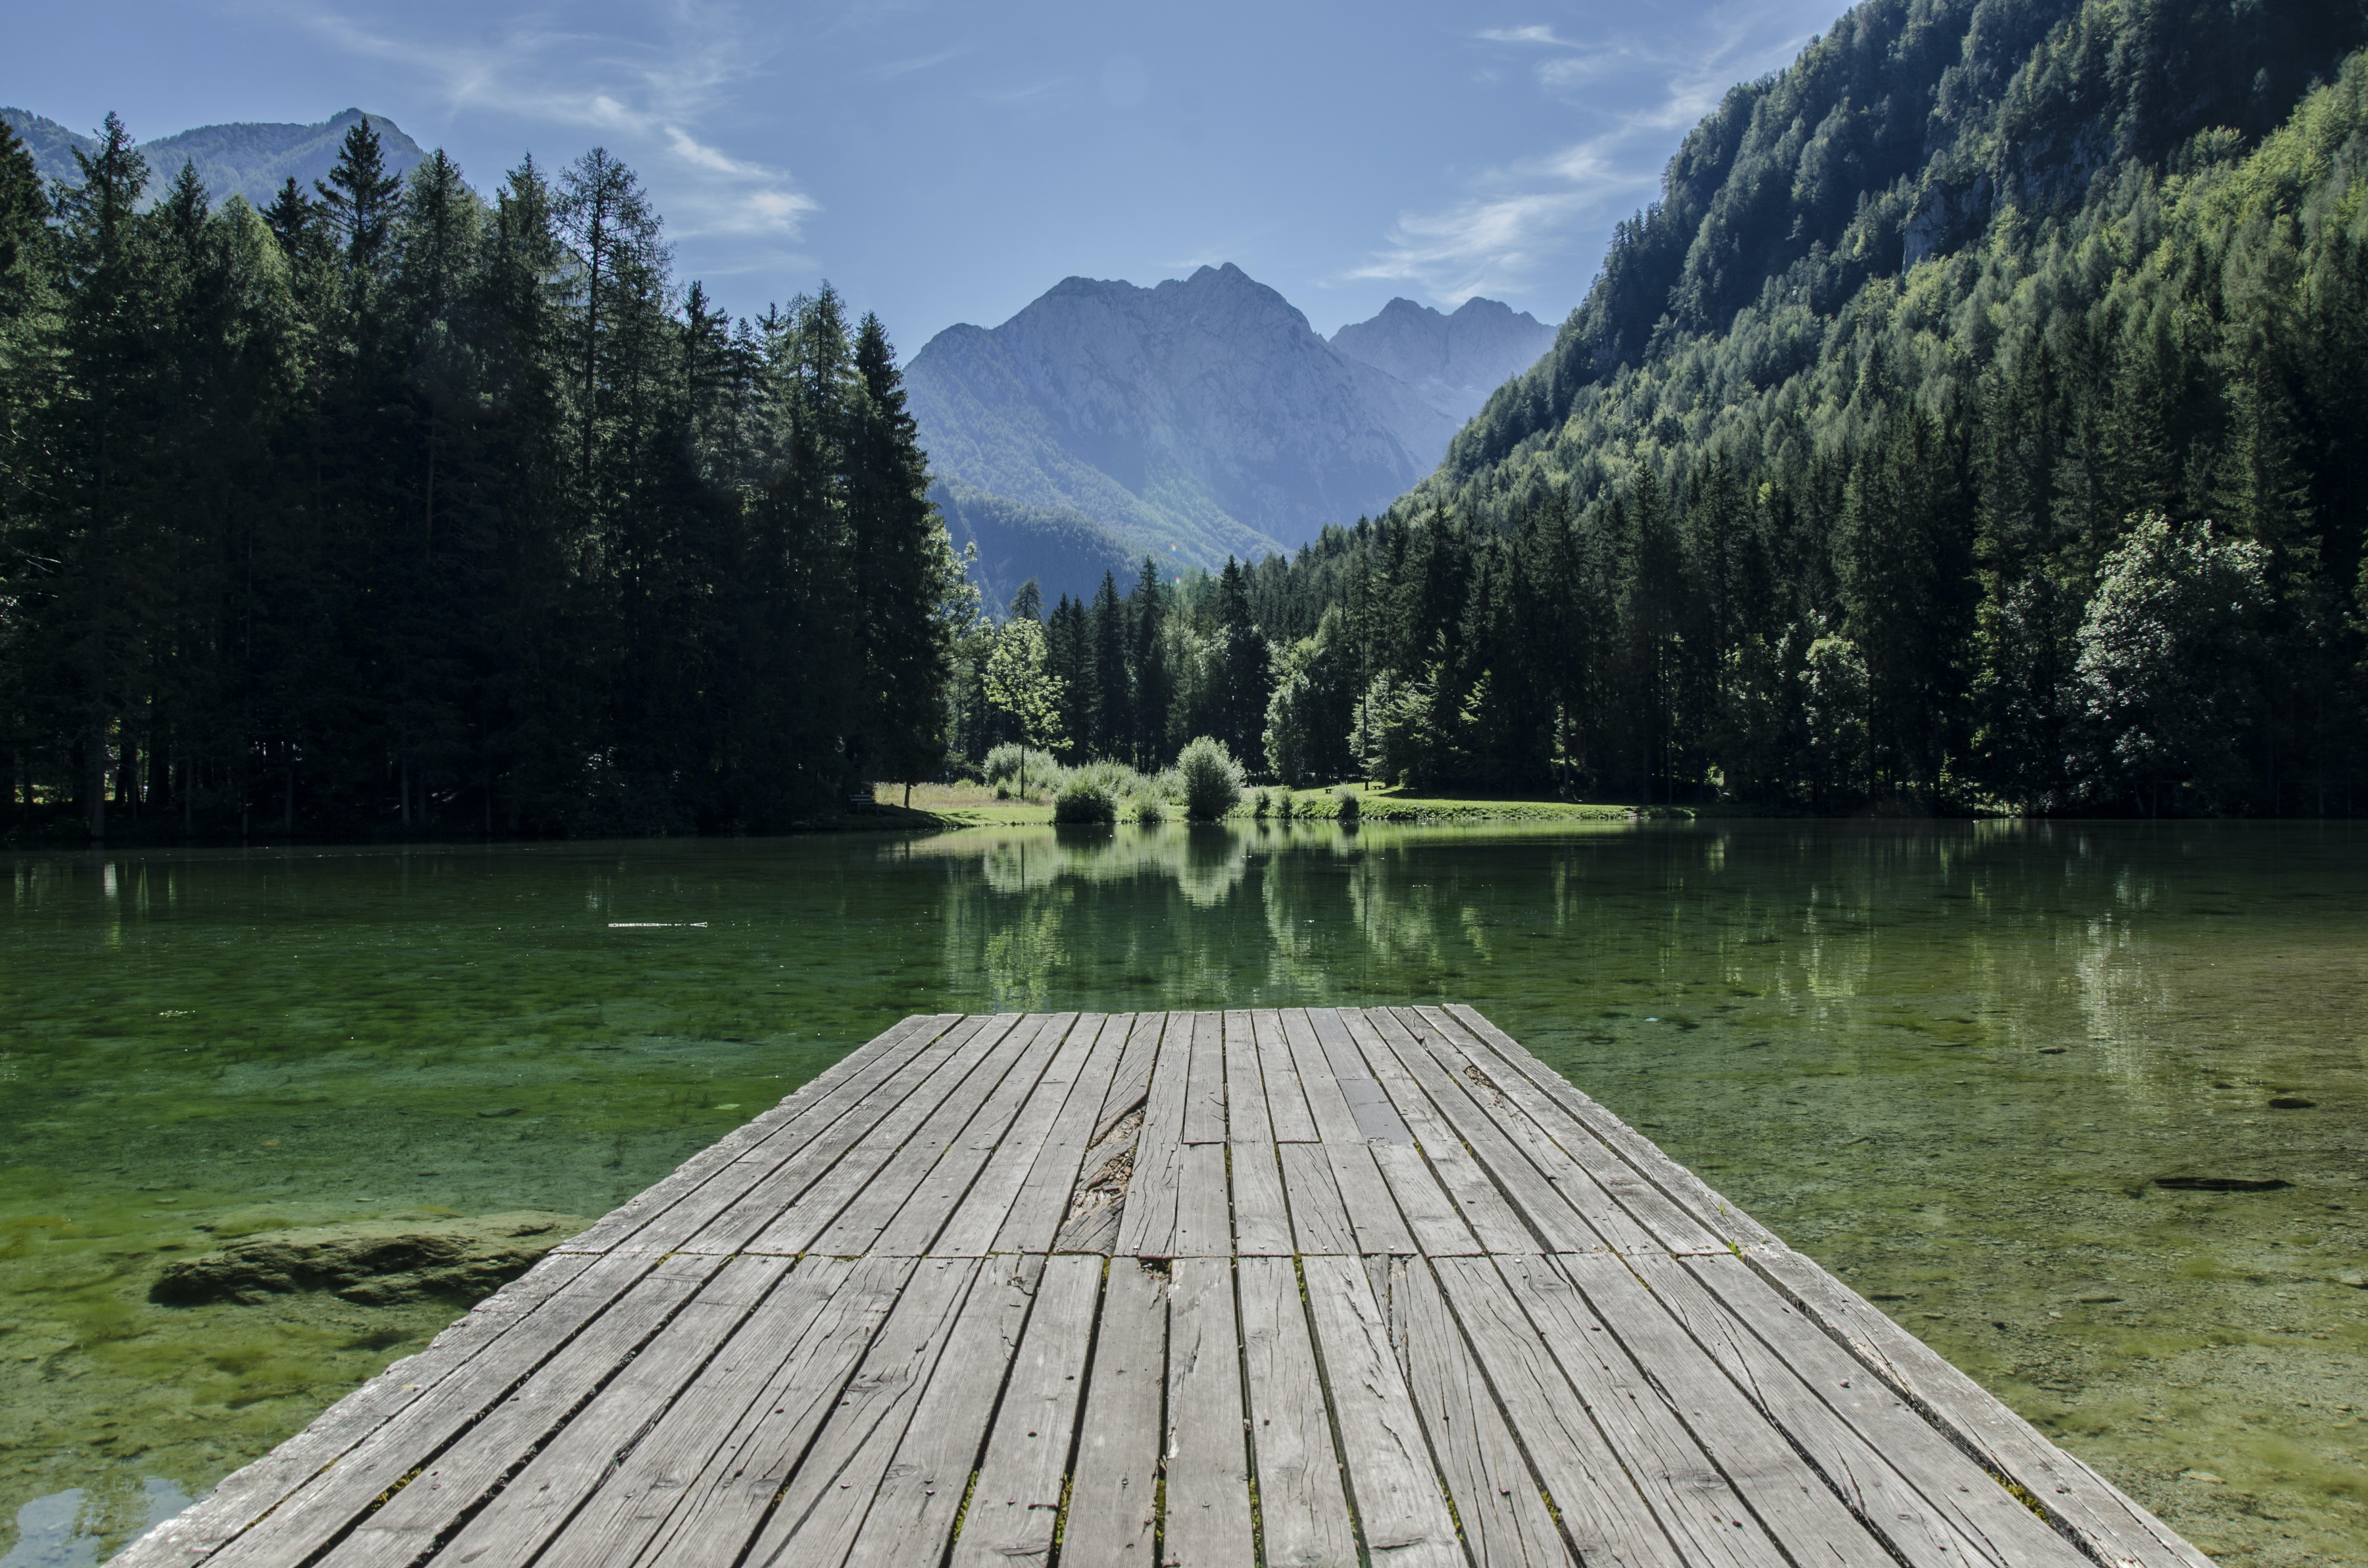 Wooded slopes rolling down to a green lake with a wooden jetty in the foreground